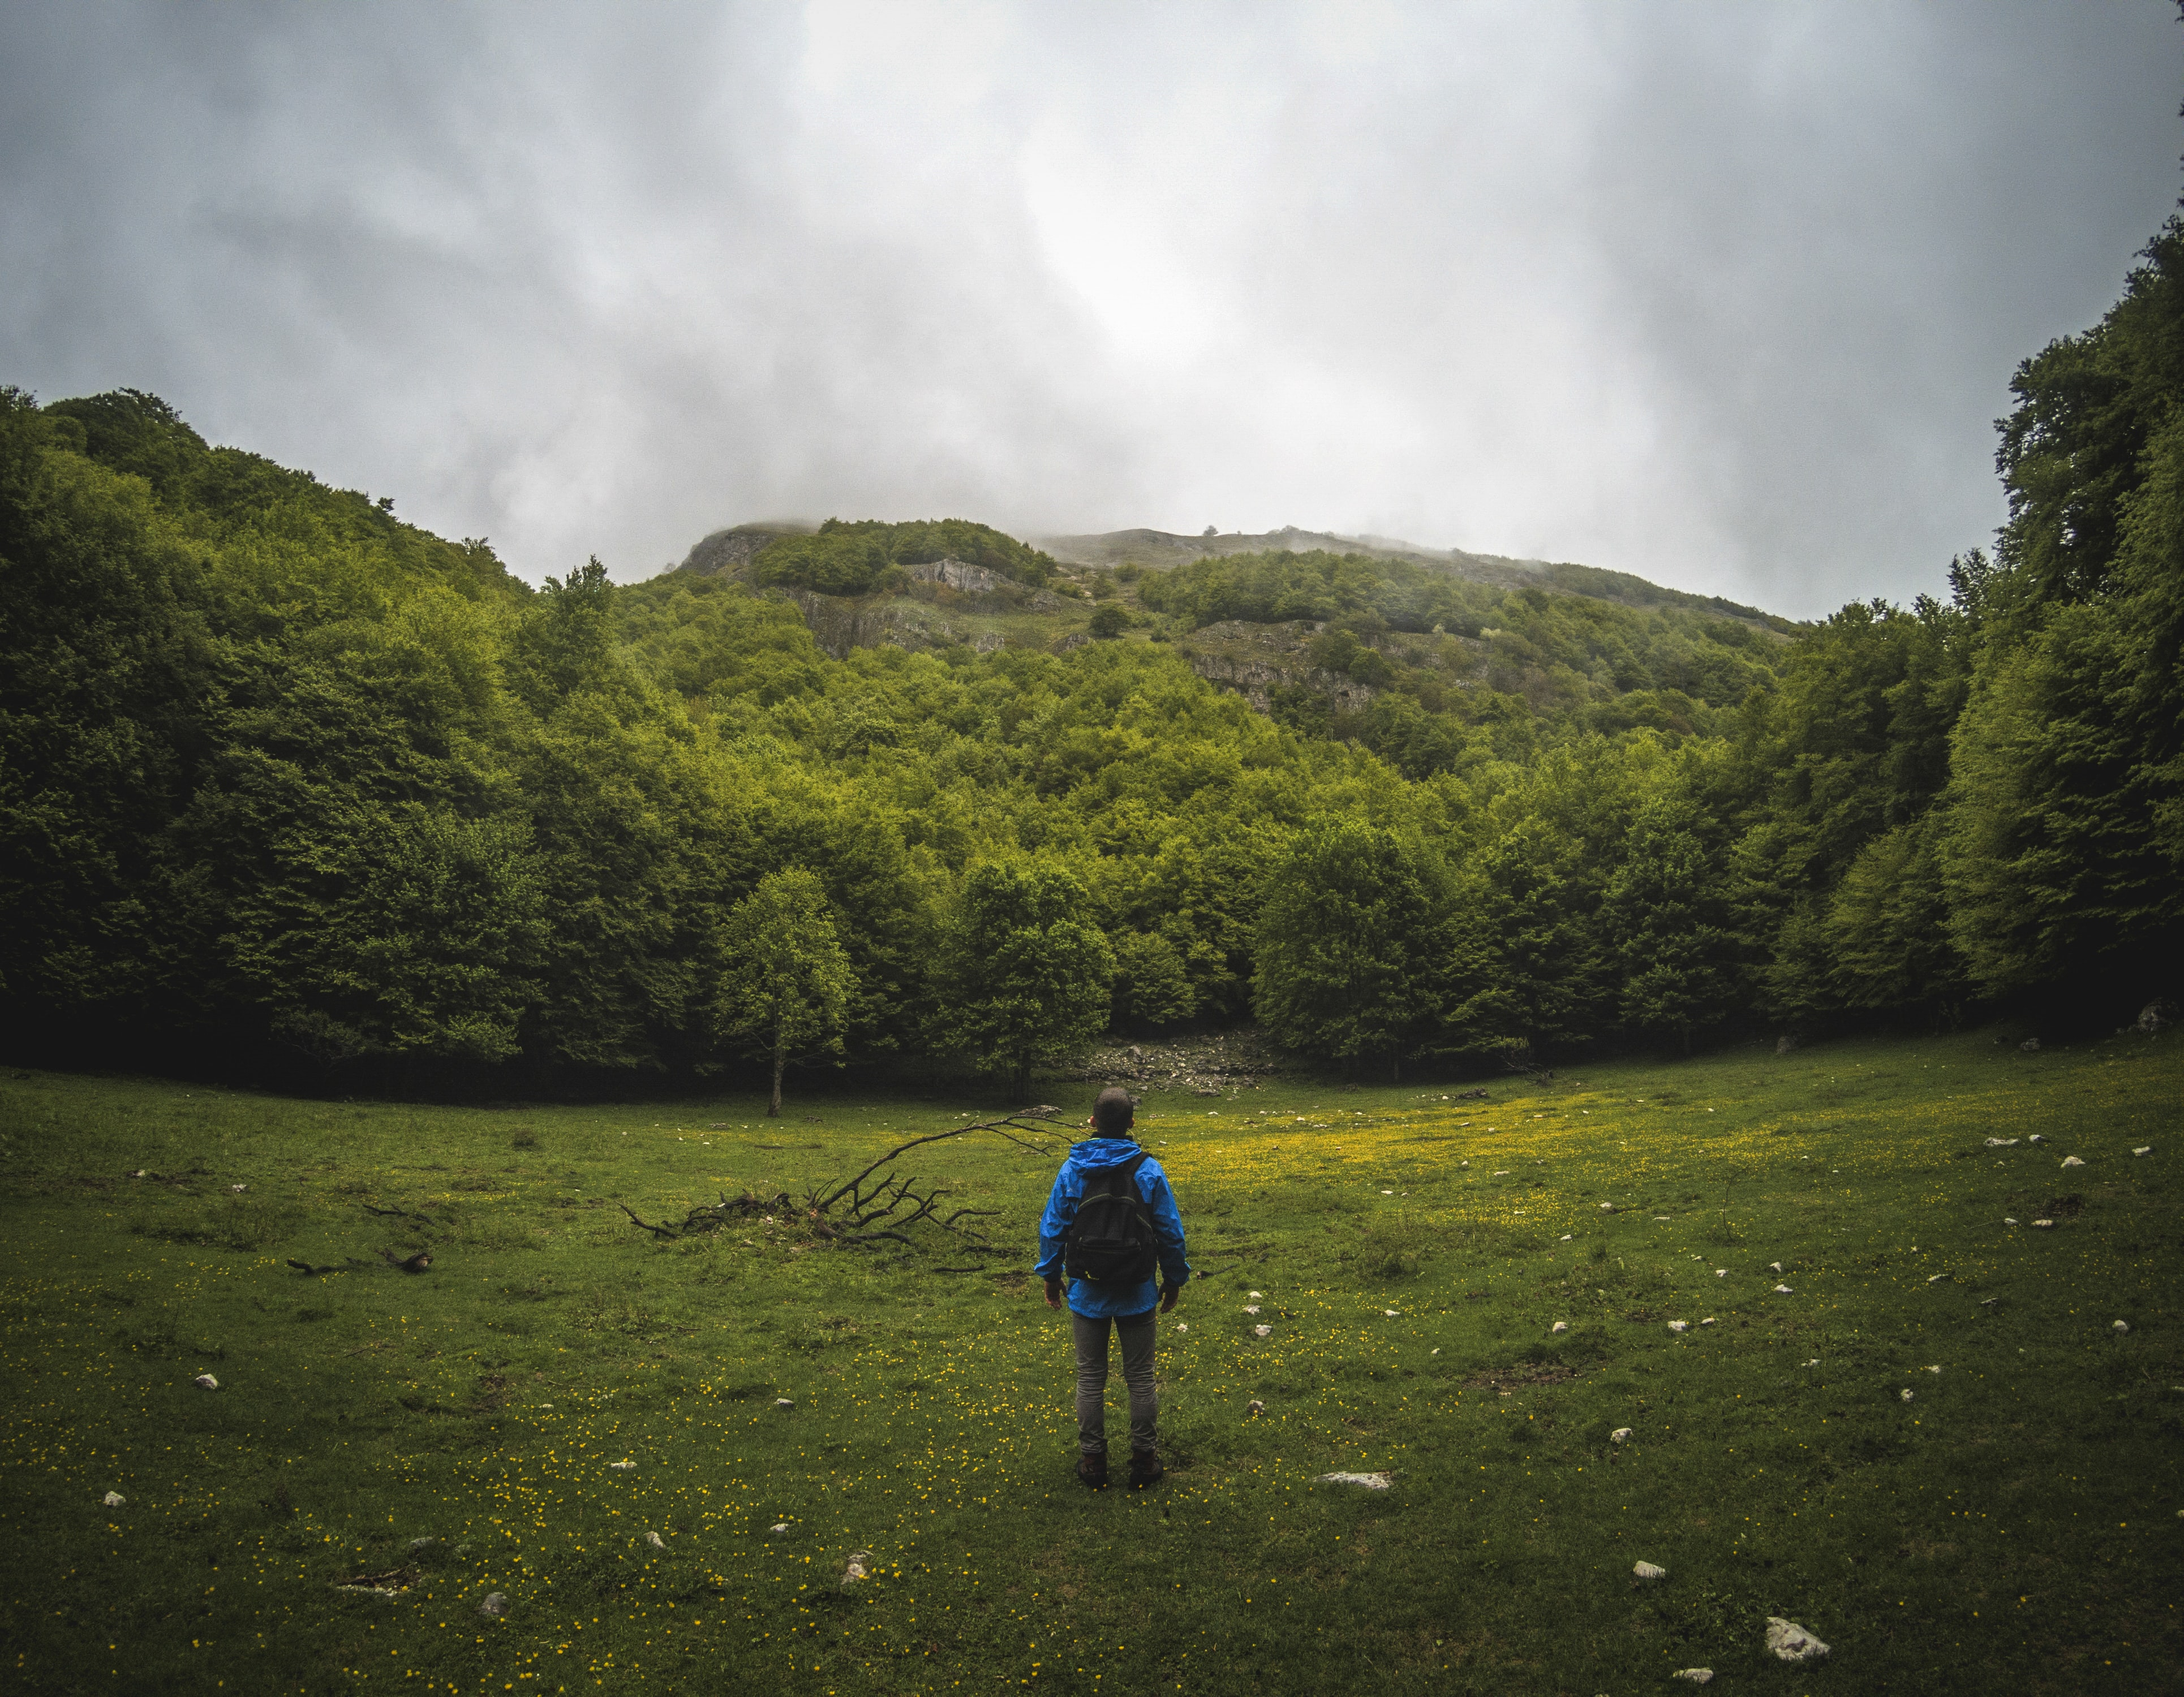 A male backpacker standing in the middle of a green glade and looking at the forest on a steep slope